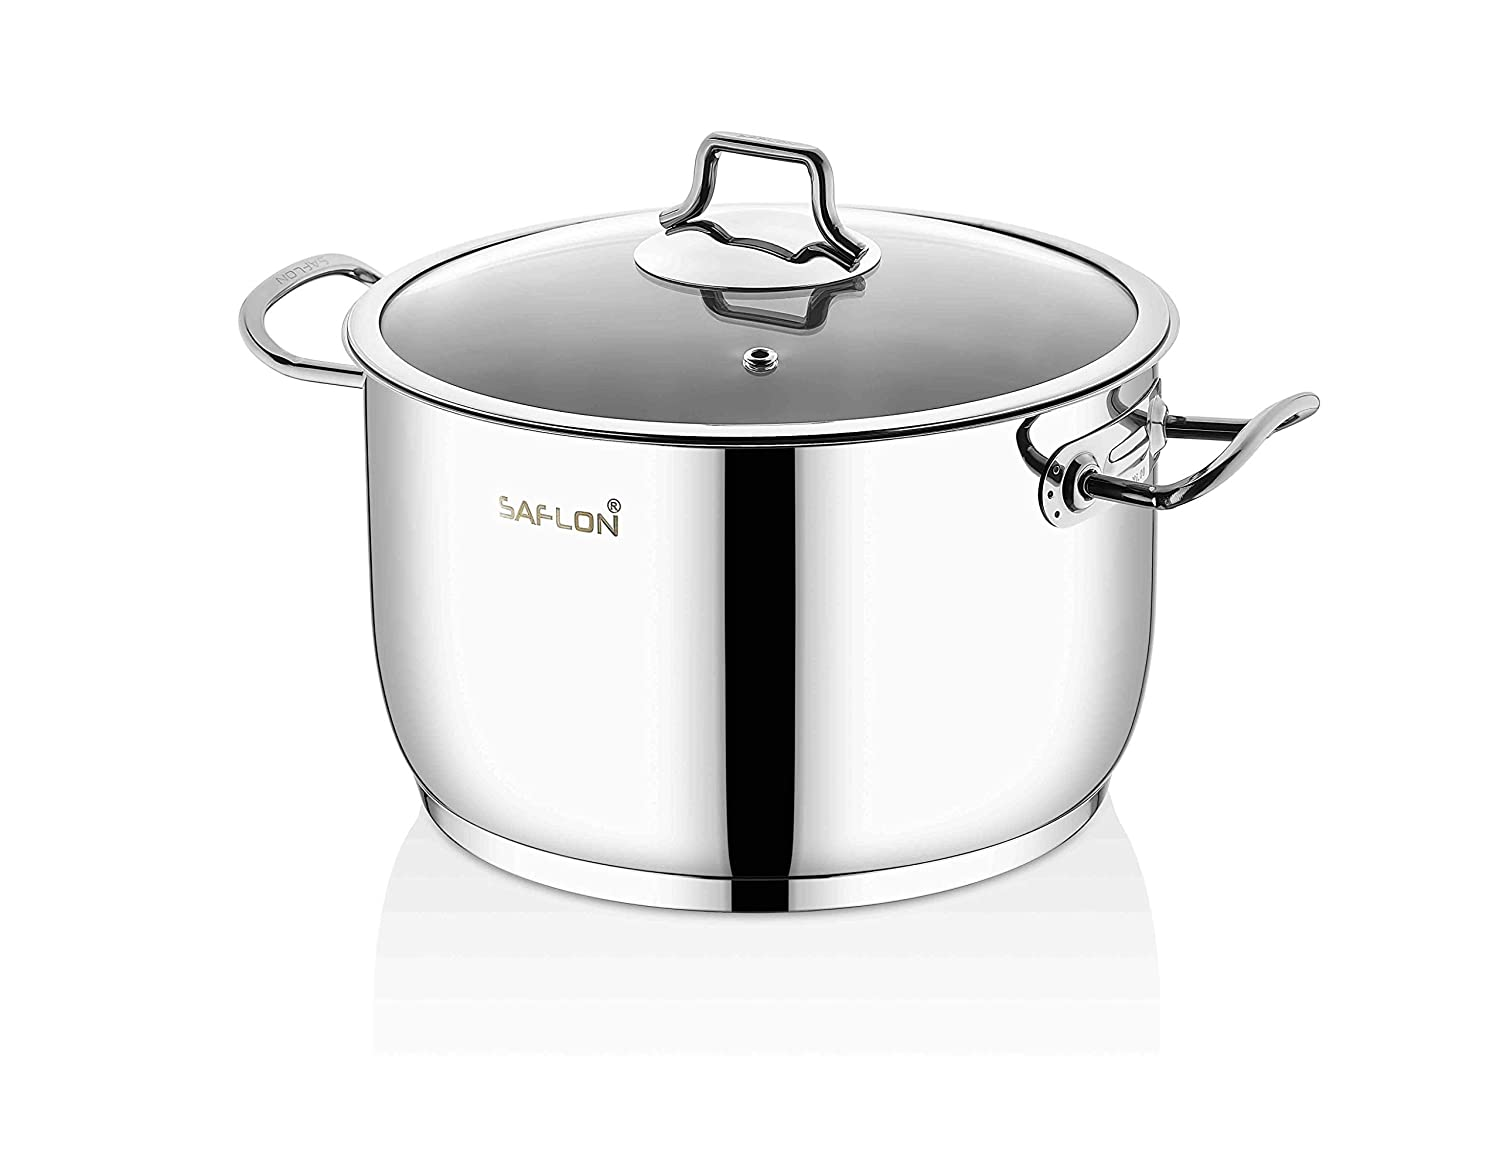 Saflon Stainless Steel Tri-Ply Capsulated Bottom 6 Quart Stock Pot with Glass Lid, Induction Ready, Oven and Dishwasher Safe